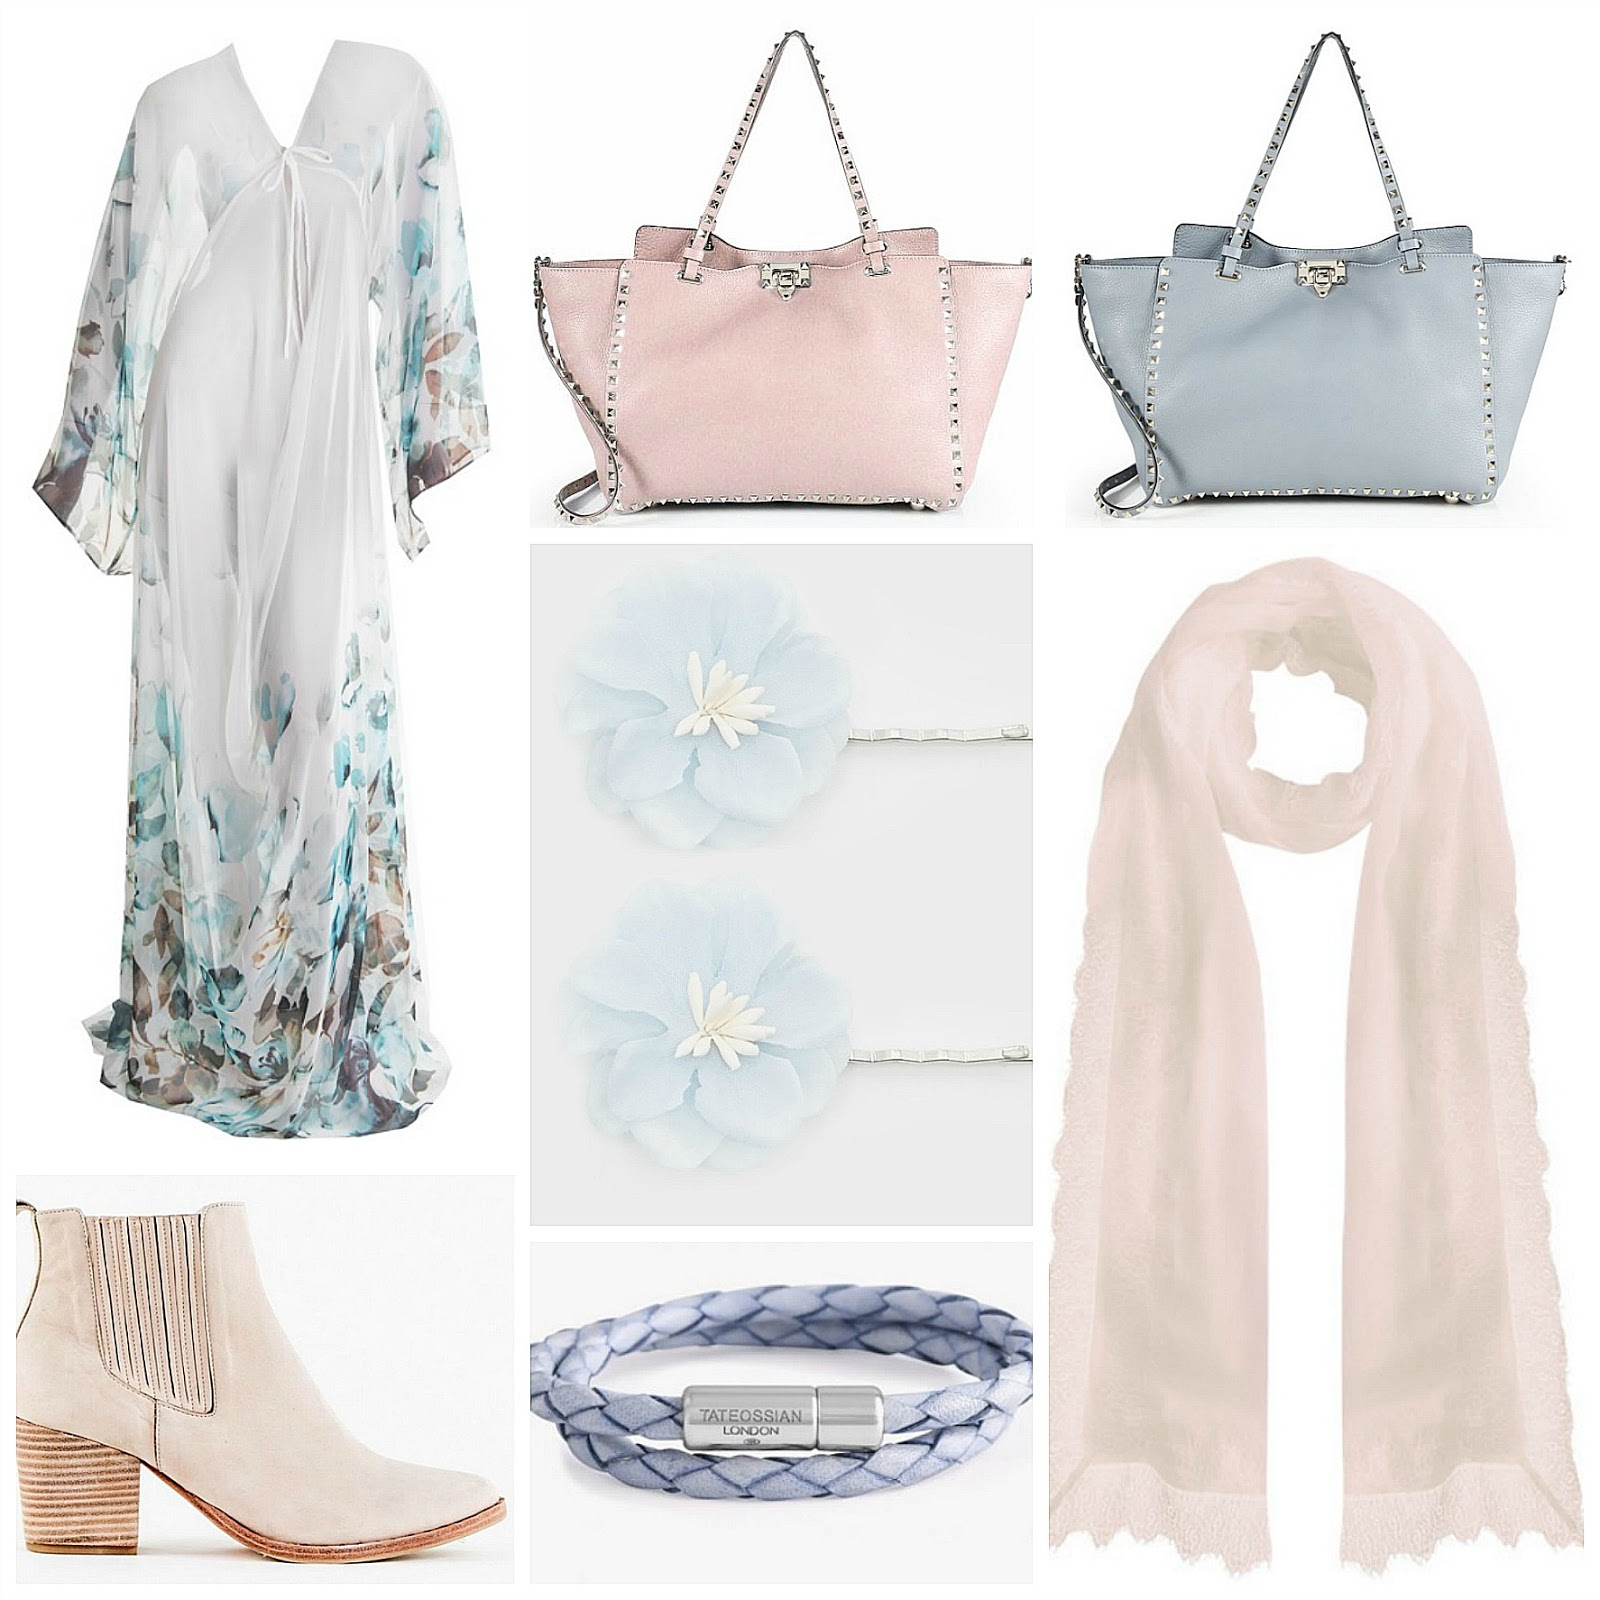 high end clothes and accessories, Lyst.co.uk, Pantone Serenity and Rose Quartz 2016